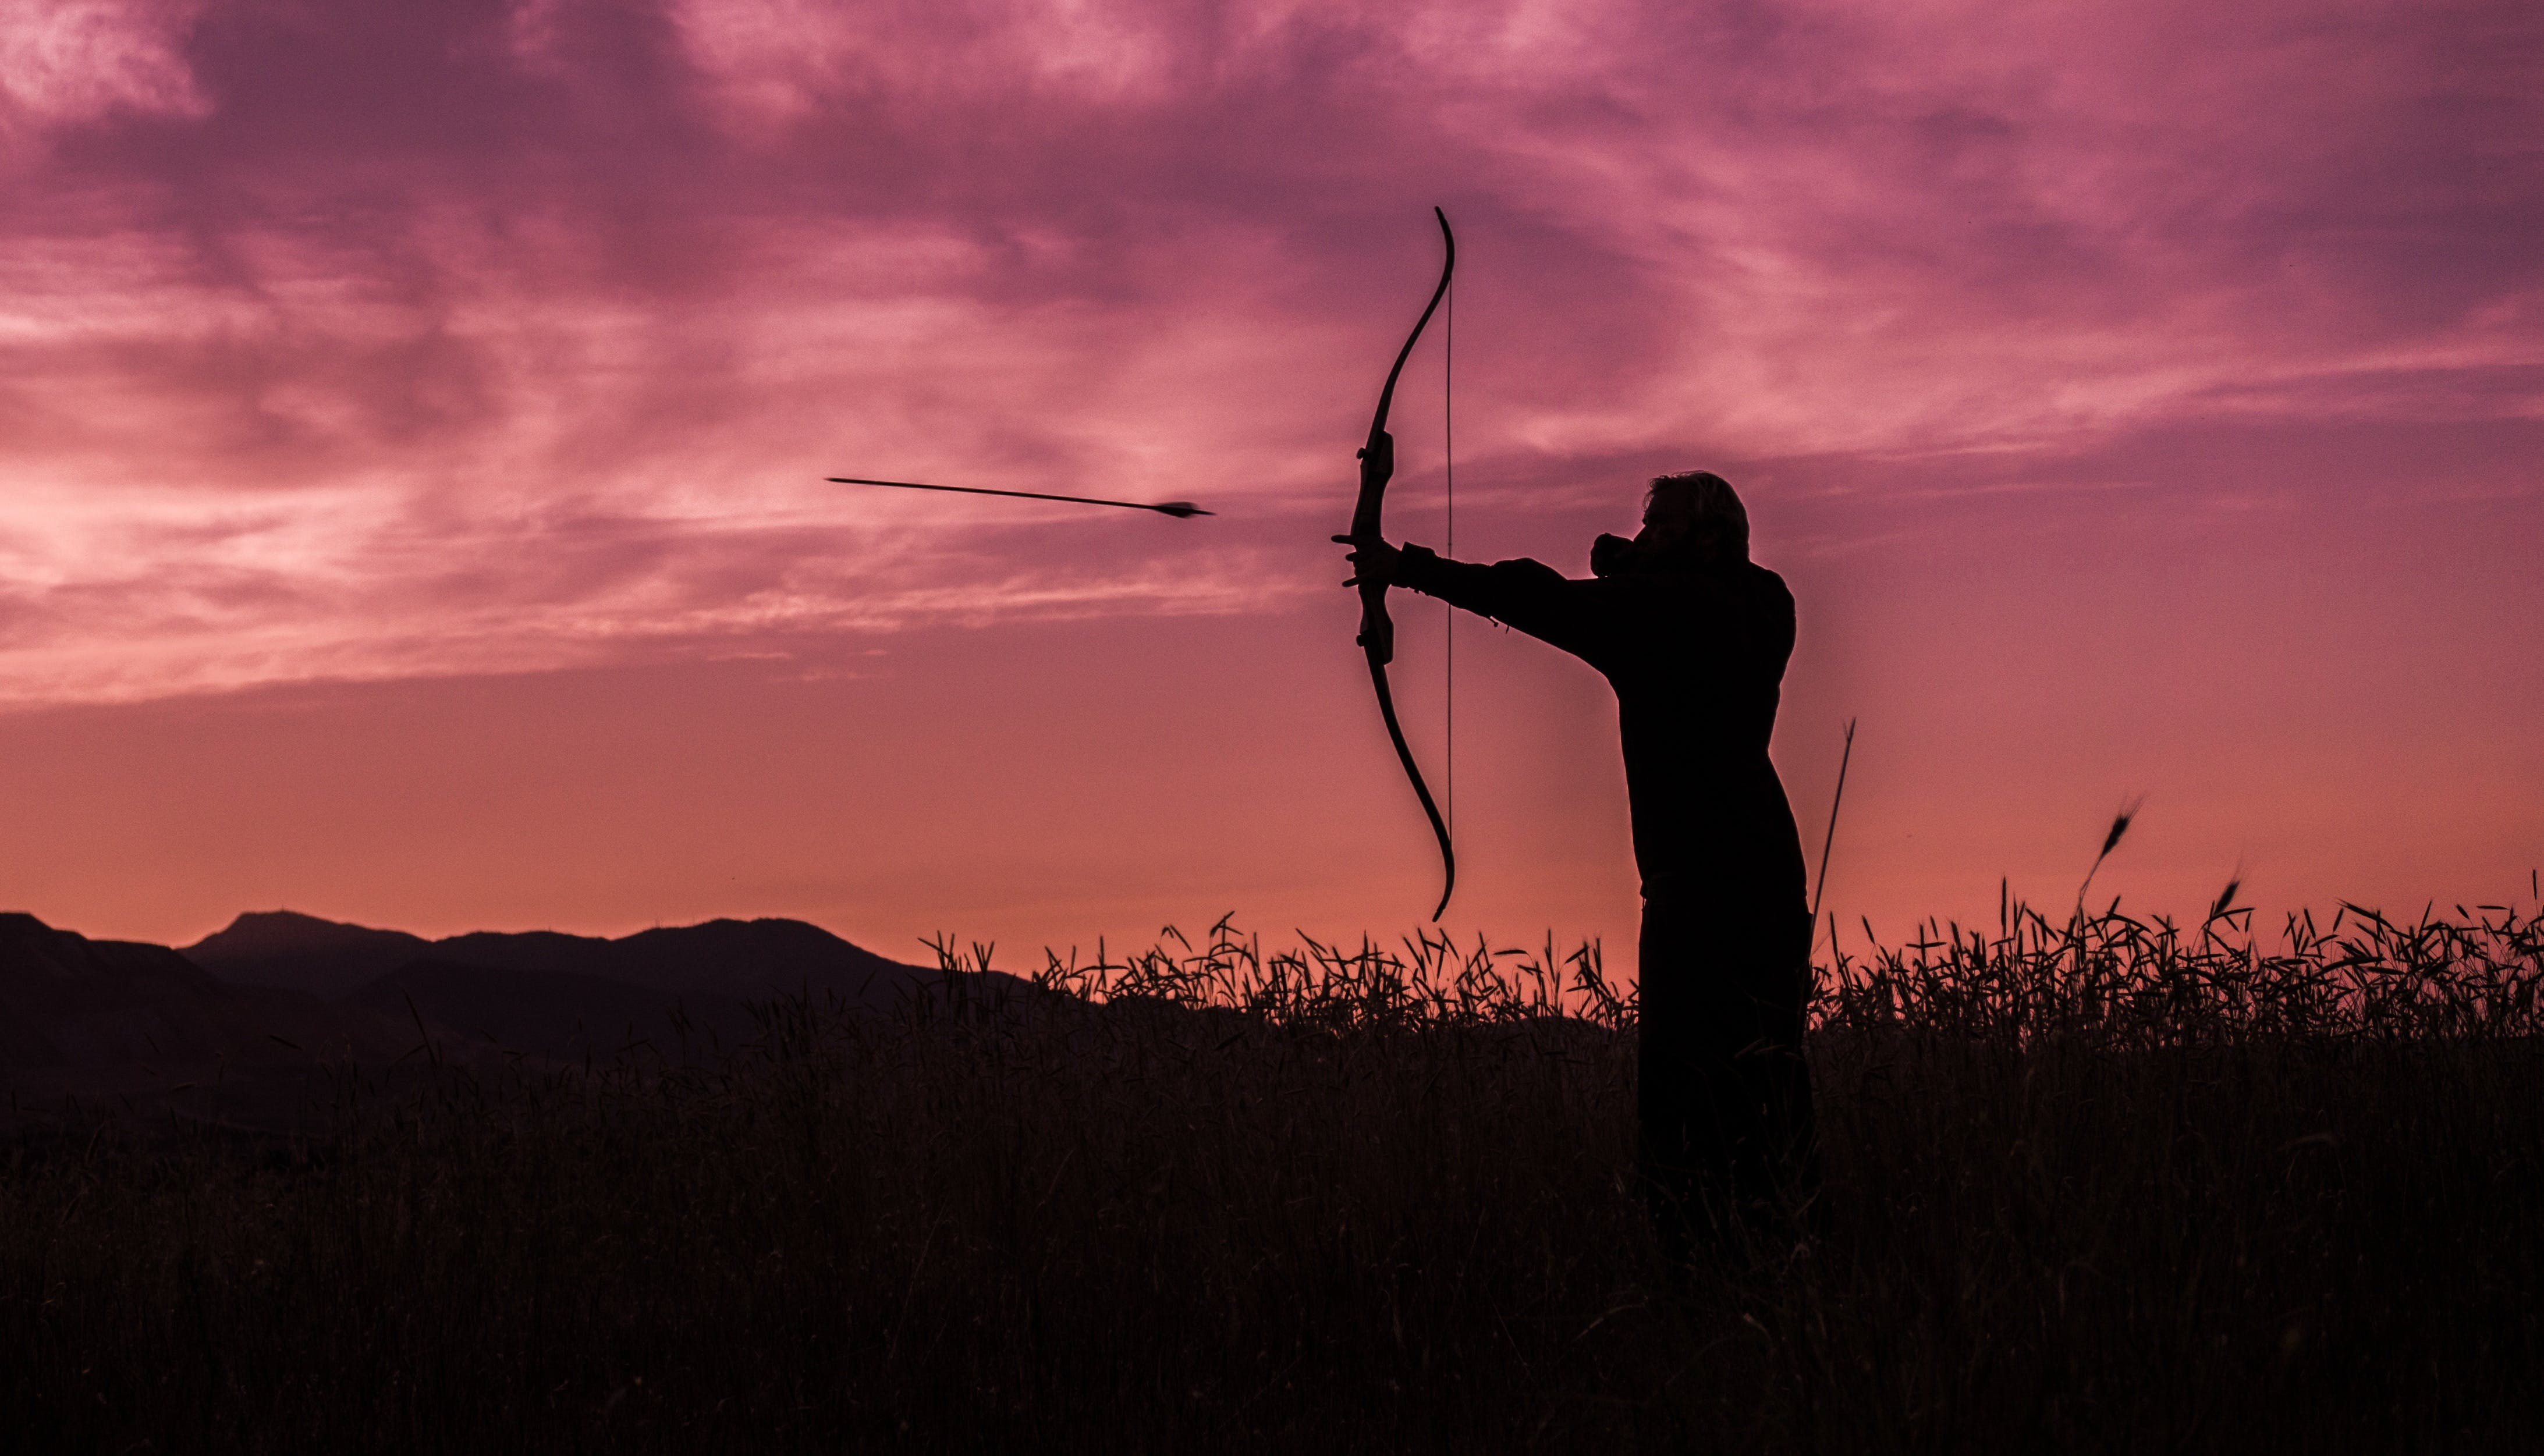 Person Shooting Arrow from Bow